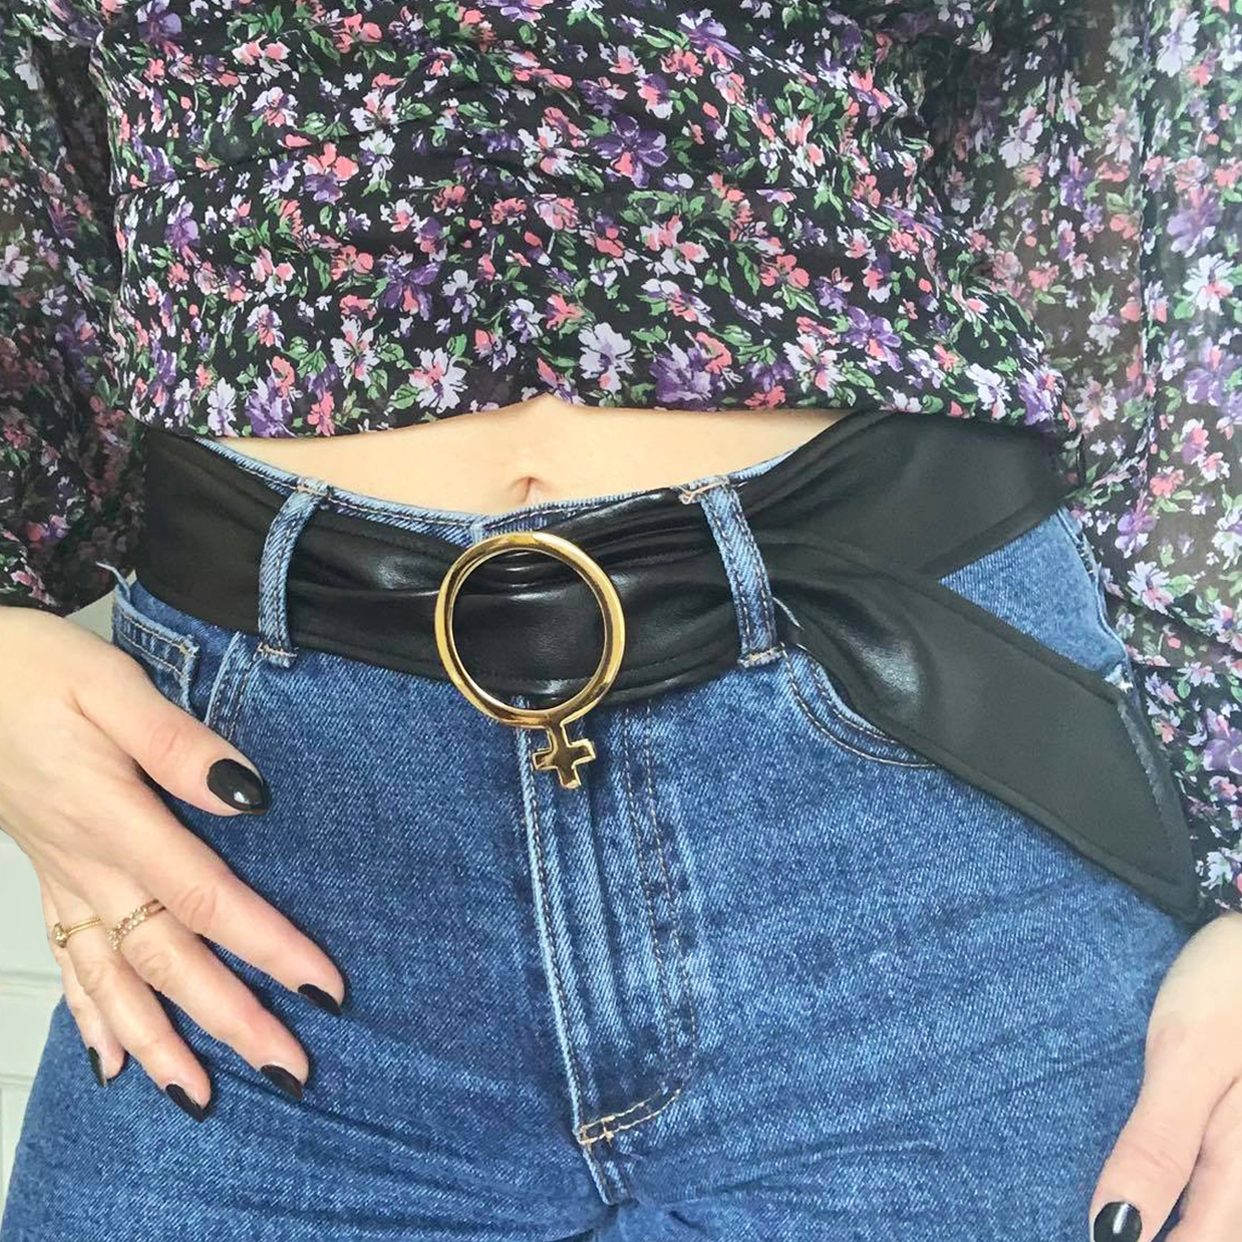 Black venus style belt with white gold buckle and black vinyl material in blue jeans and crop top on a model wearing black nail polish.